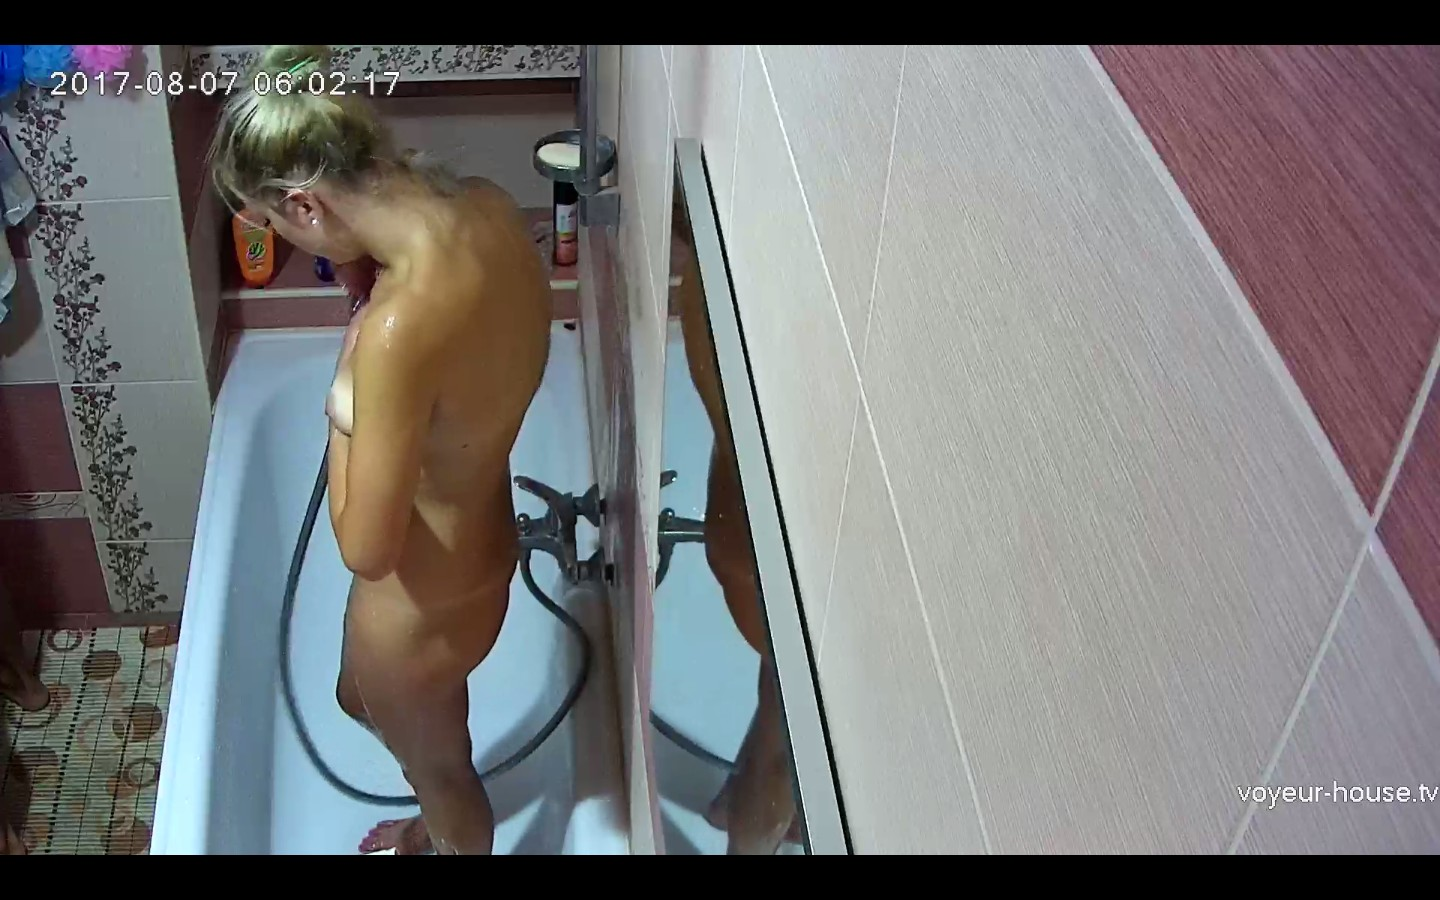 mmm gay gay porn very young